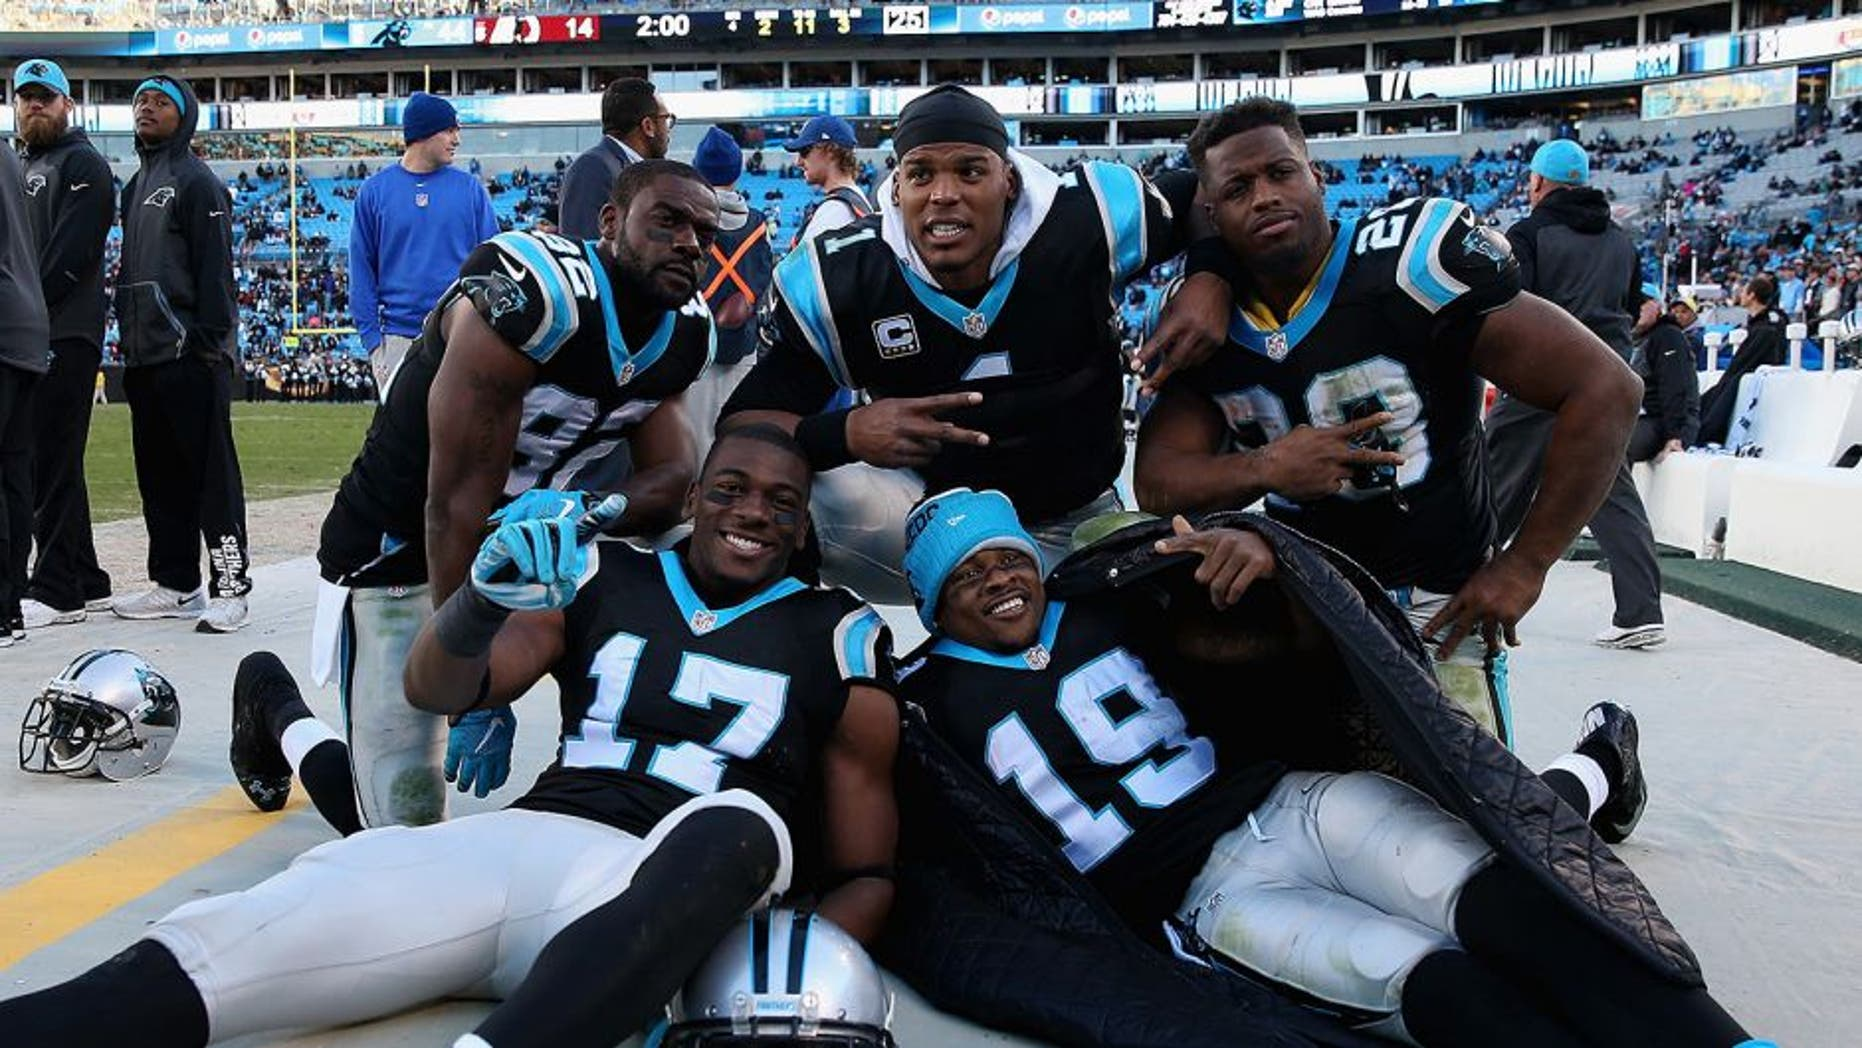 CHARLOTTE, NC - NOVEMBER 22: Teammates Jerricho Cotchery #82, Devin Funchess #17, Ted Ginn #19, Jonathan Stewart #28 and Cam Newton #1 of the Carolina Panthers celebrate after defeating the Washington Redskins 44-16 at Bank of America Stadium on November 22, 2015 in Charlotte, North Carolina. (Photo by Streeter Lecka/Getty Images)